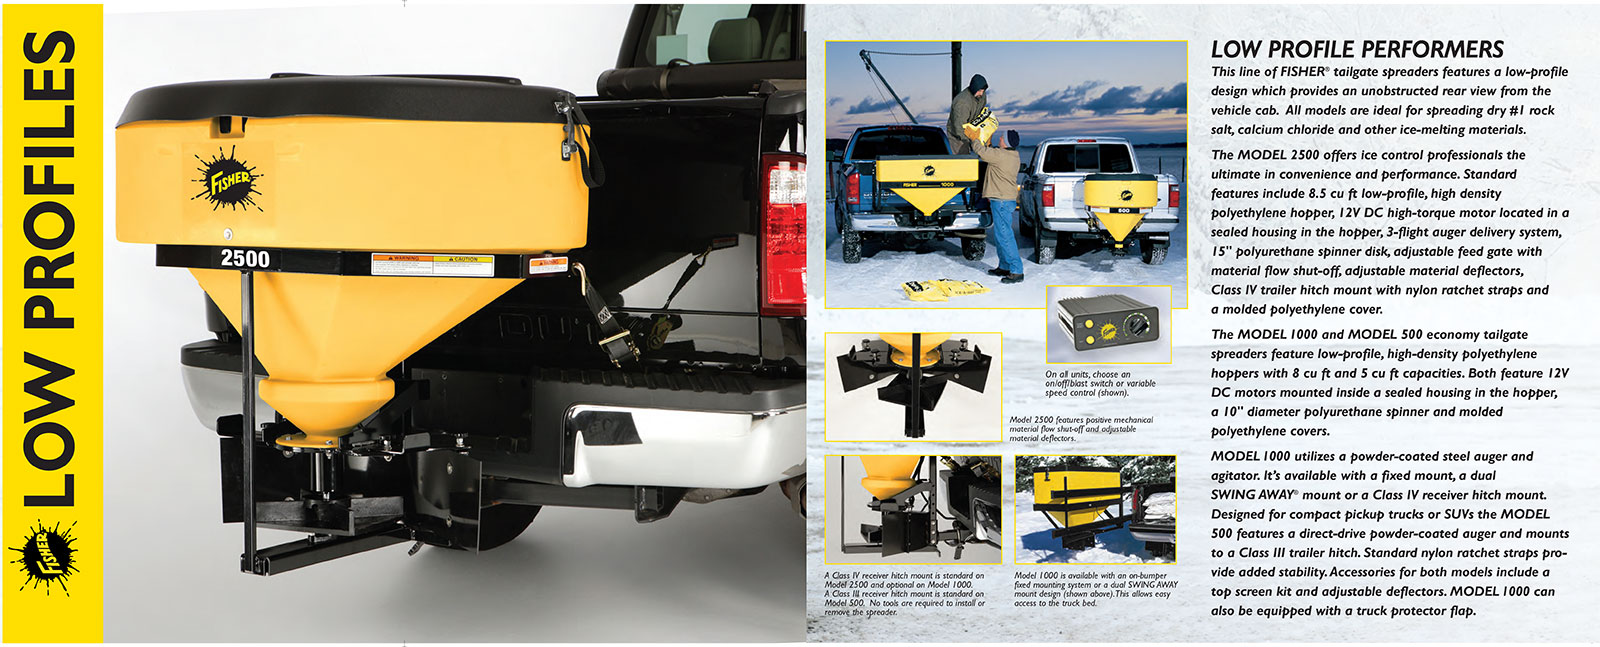 hight resolution of fisher low profile tailgate salt spreader information